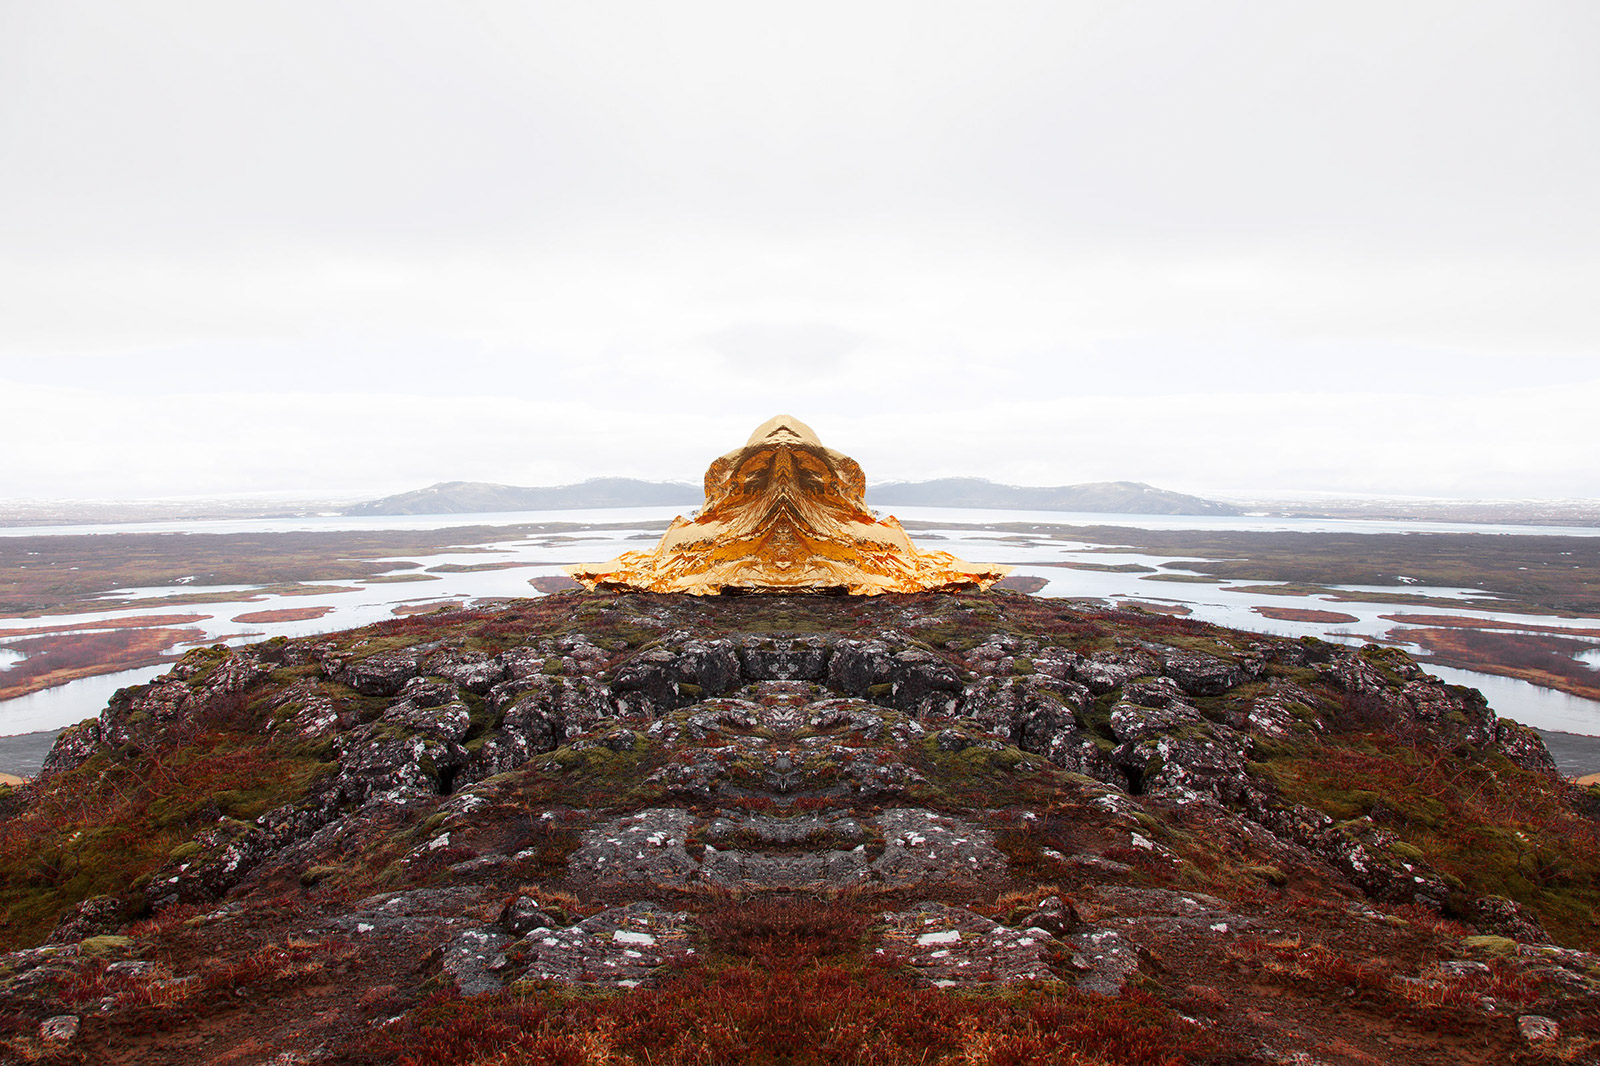 Iceland-National-Park  | Edition of 10 | 2015 | Edition of 10